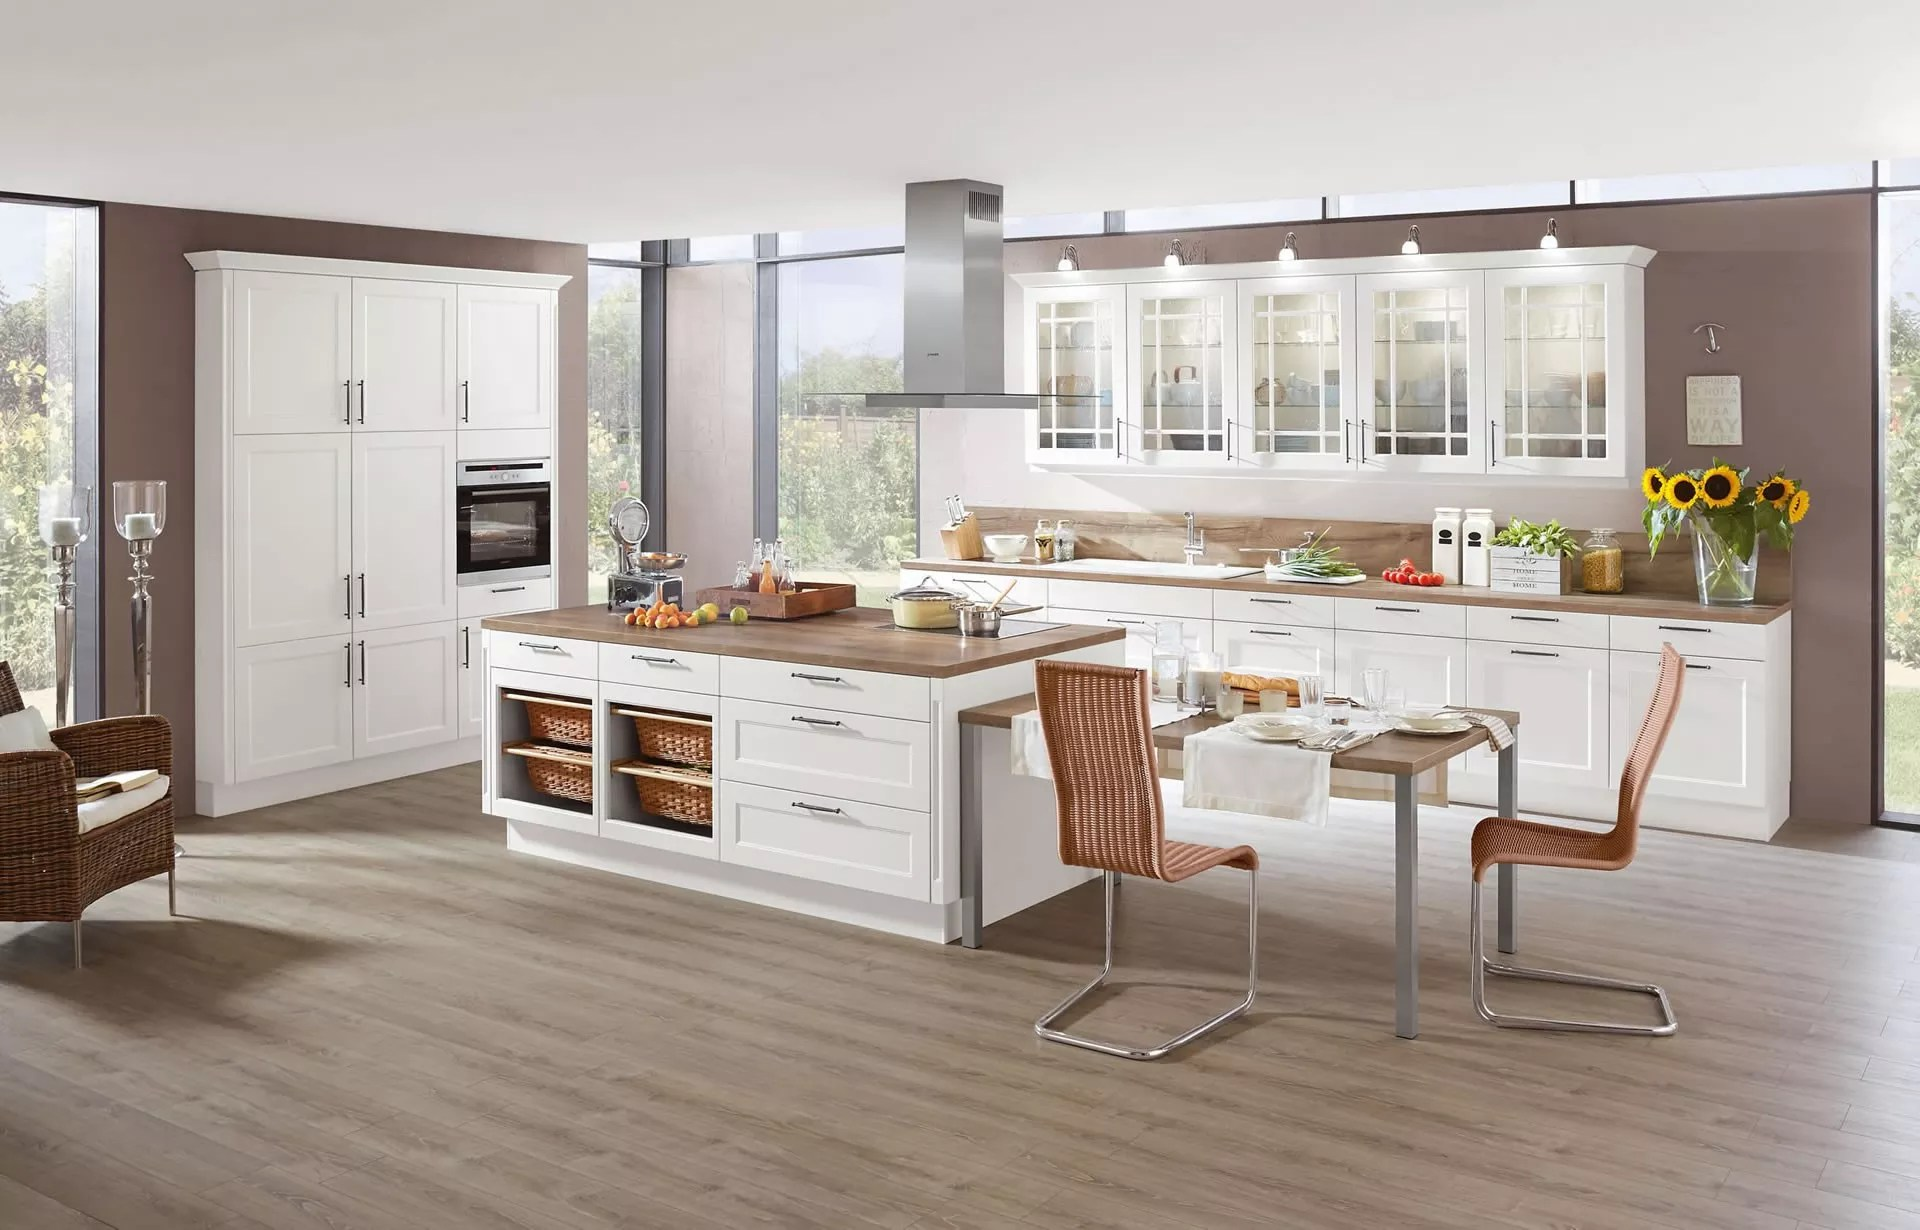 New Kitchen Ideas New Kitchen Ideas Pre Manufactured Cabinets Fully Assembled Kitchen Cabinets View Pre Manufactured Cabinets Prima Product Details From Shenzhen